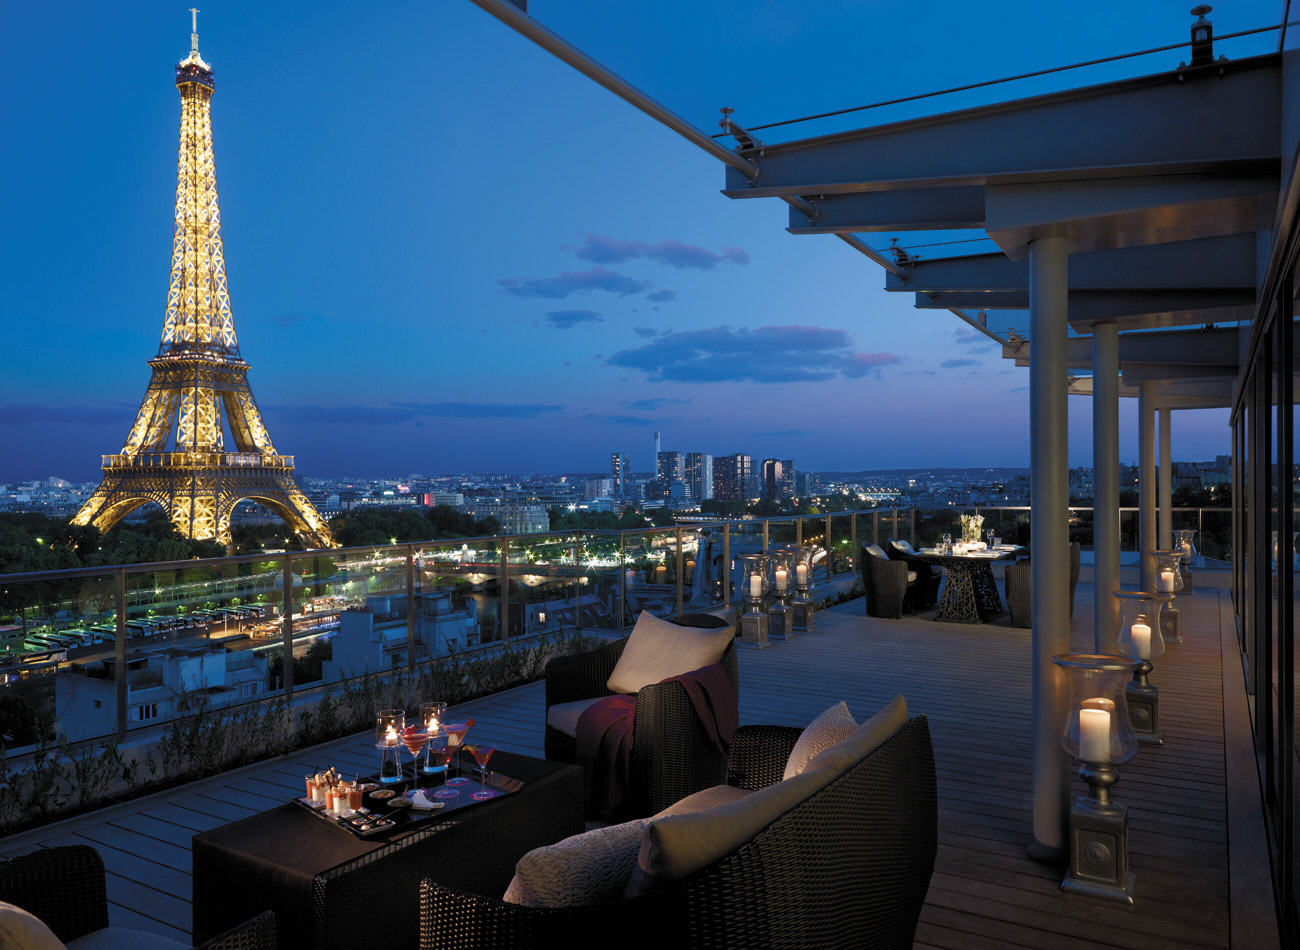 Hotel de luxe paris voyages cartes for Hotel luxe france